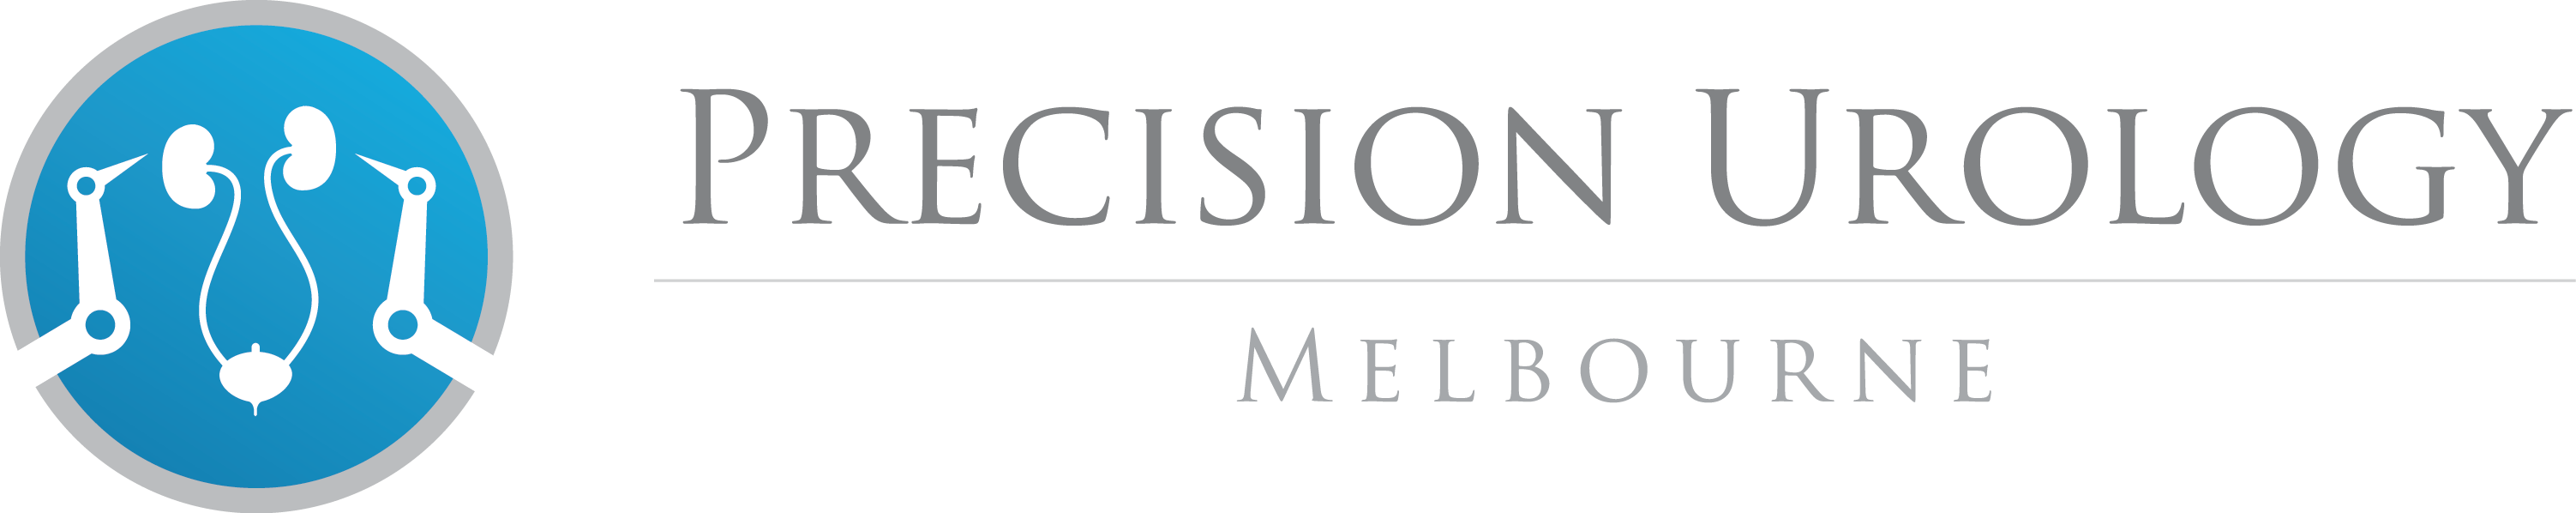 Precision Urology Melbourne | Robotic Surgery and Uro-Oncology